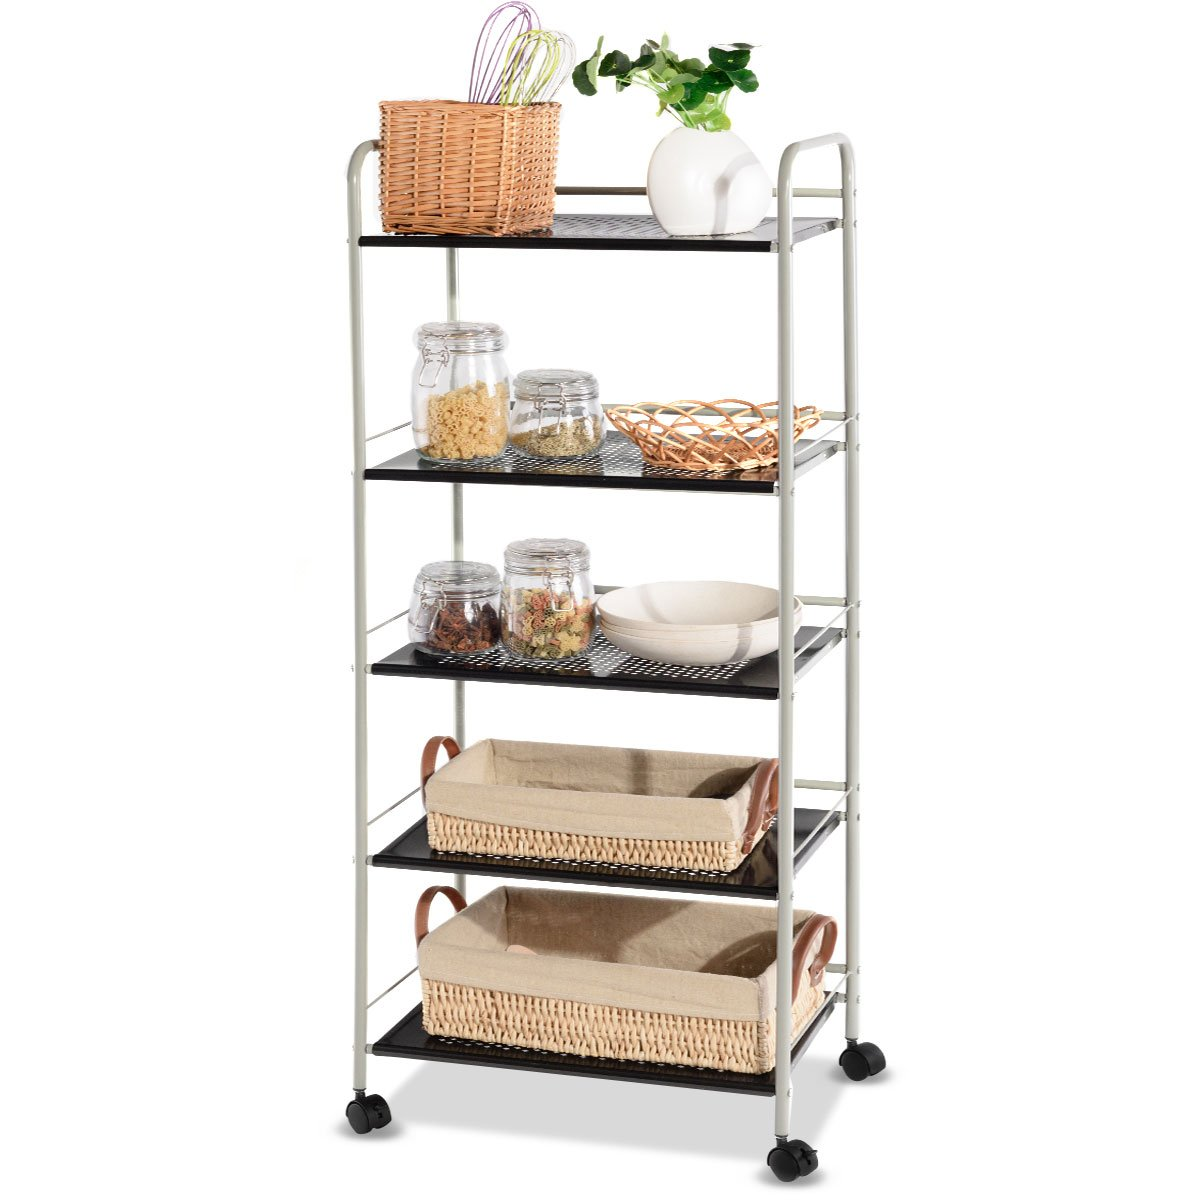 Giantex Steel Utility Cart Storage Shelf Rack Mobile Casters Metal Mesh Commercial Kitchen Warehouse Garage Bathroom Capacity Shelving Shelves Organizer W/Lockable Rolling Wheels (5 Tier Wide)